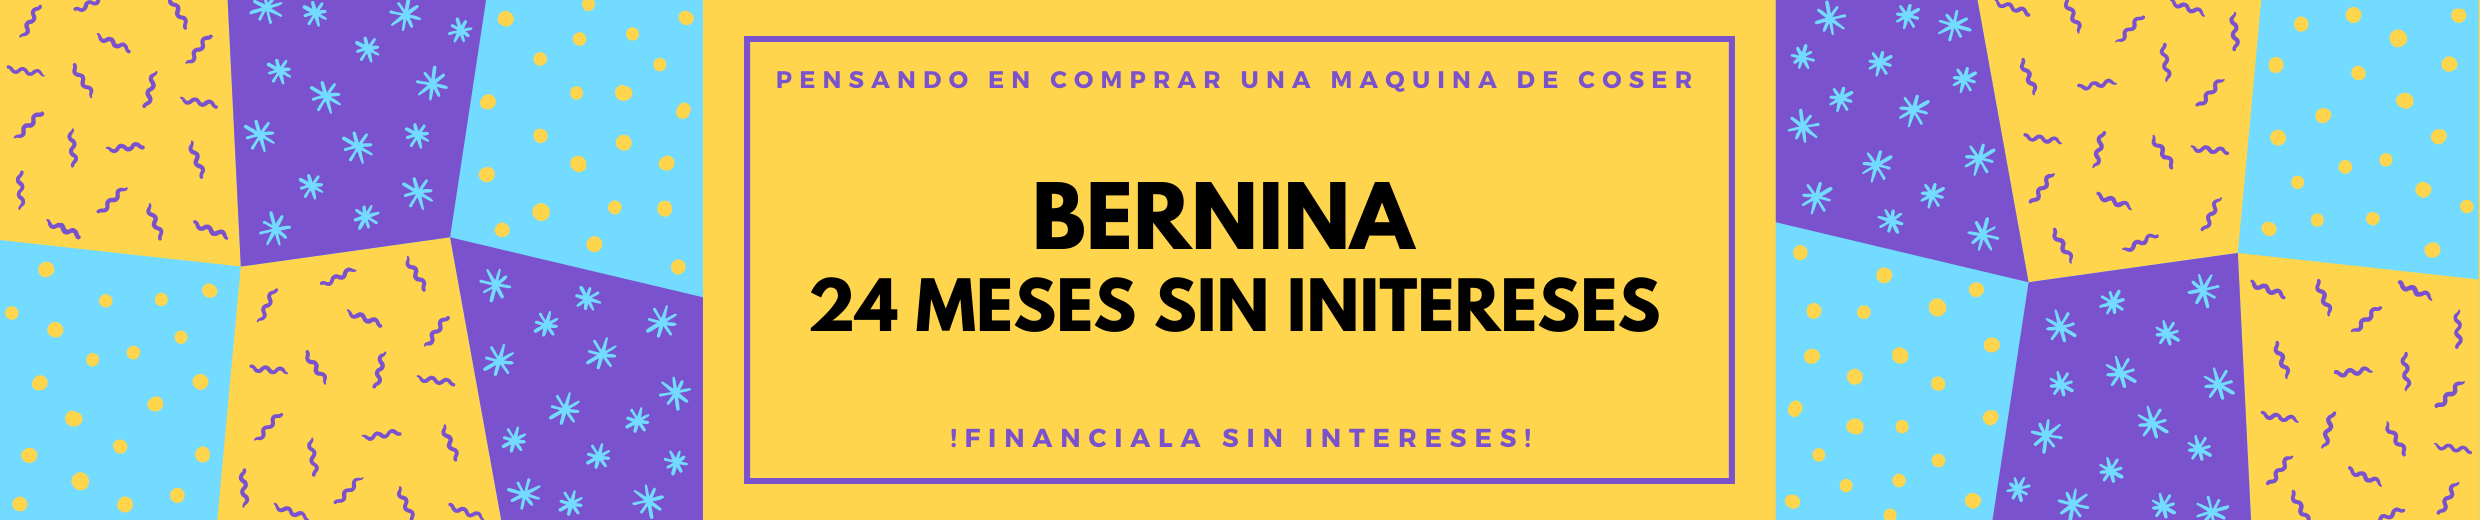 bernina-sin-intereses